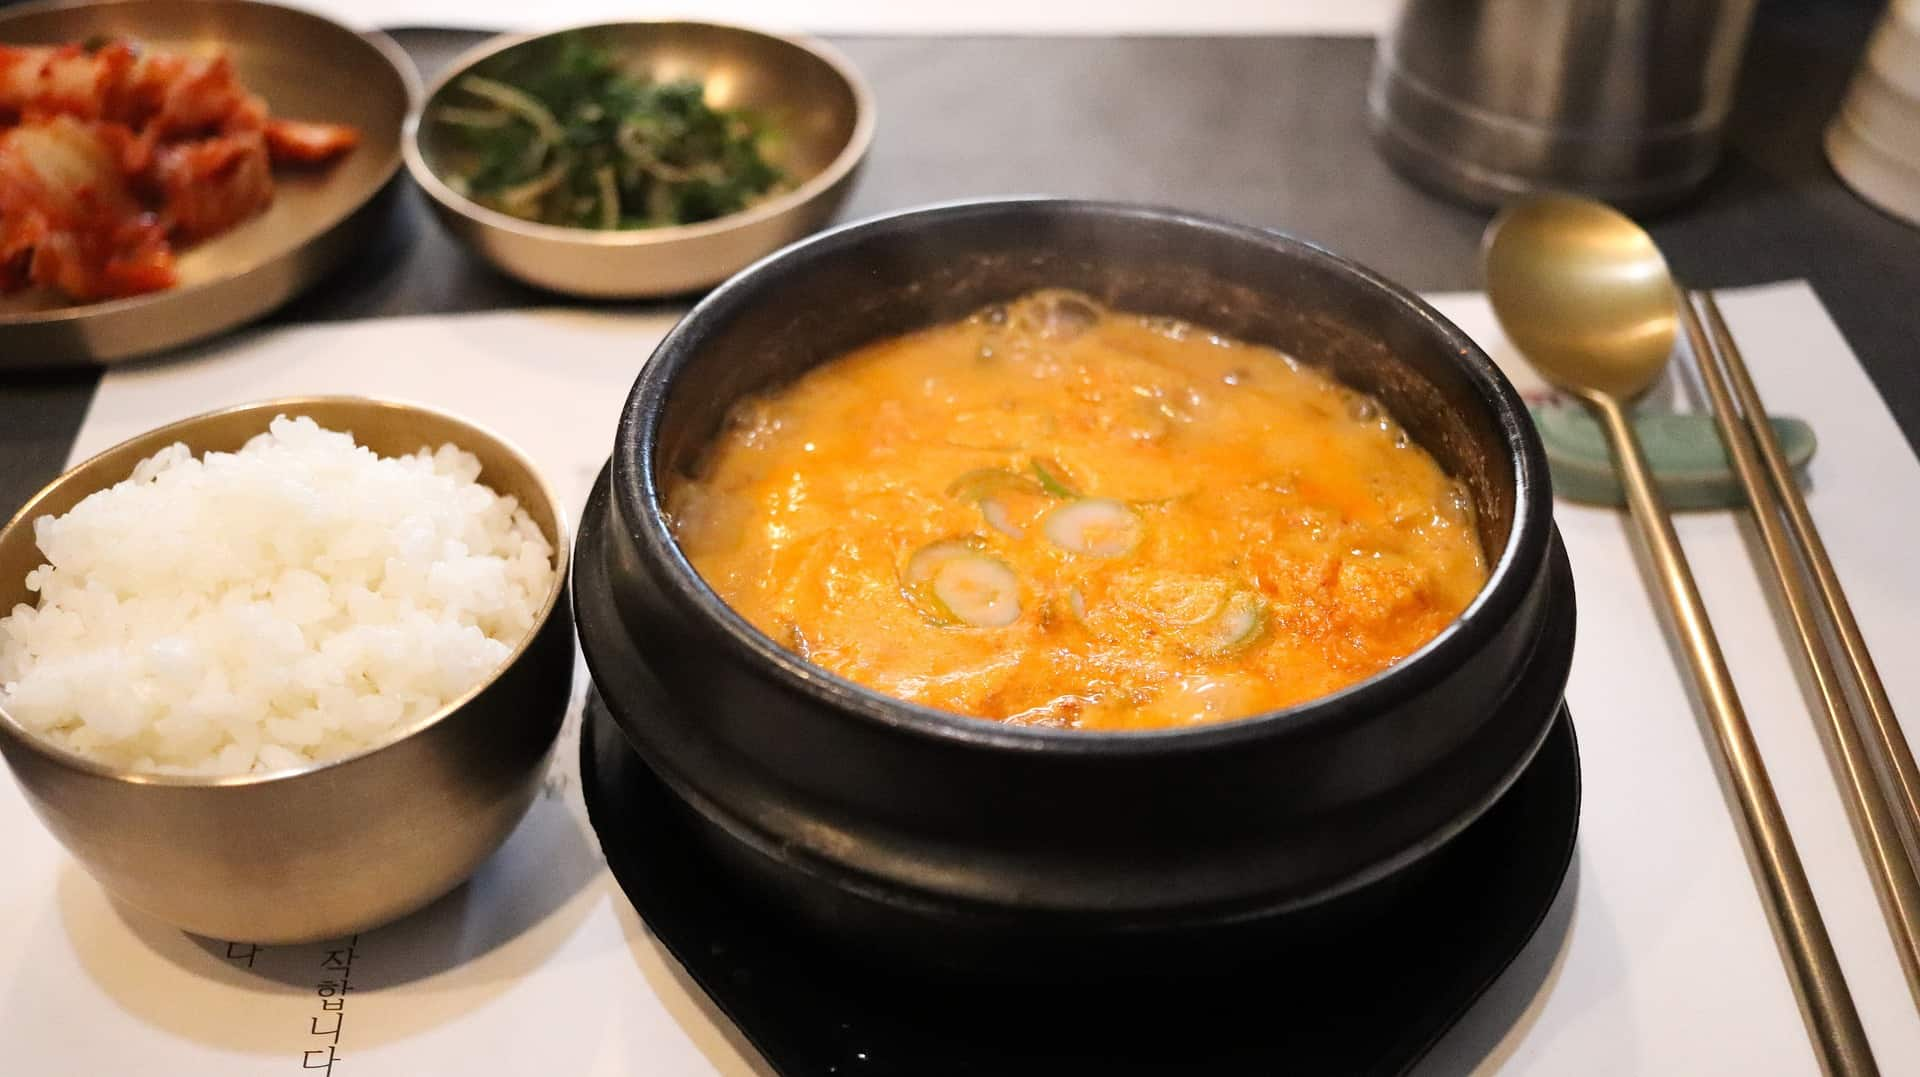 a dish in a traditional pot next to a small bowl of rice